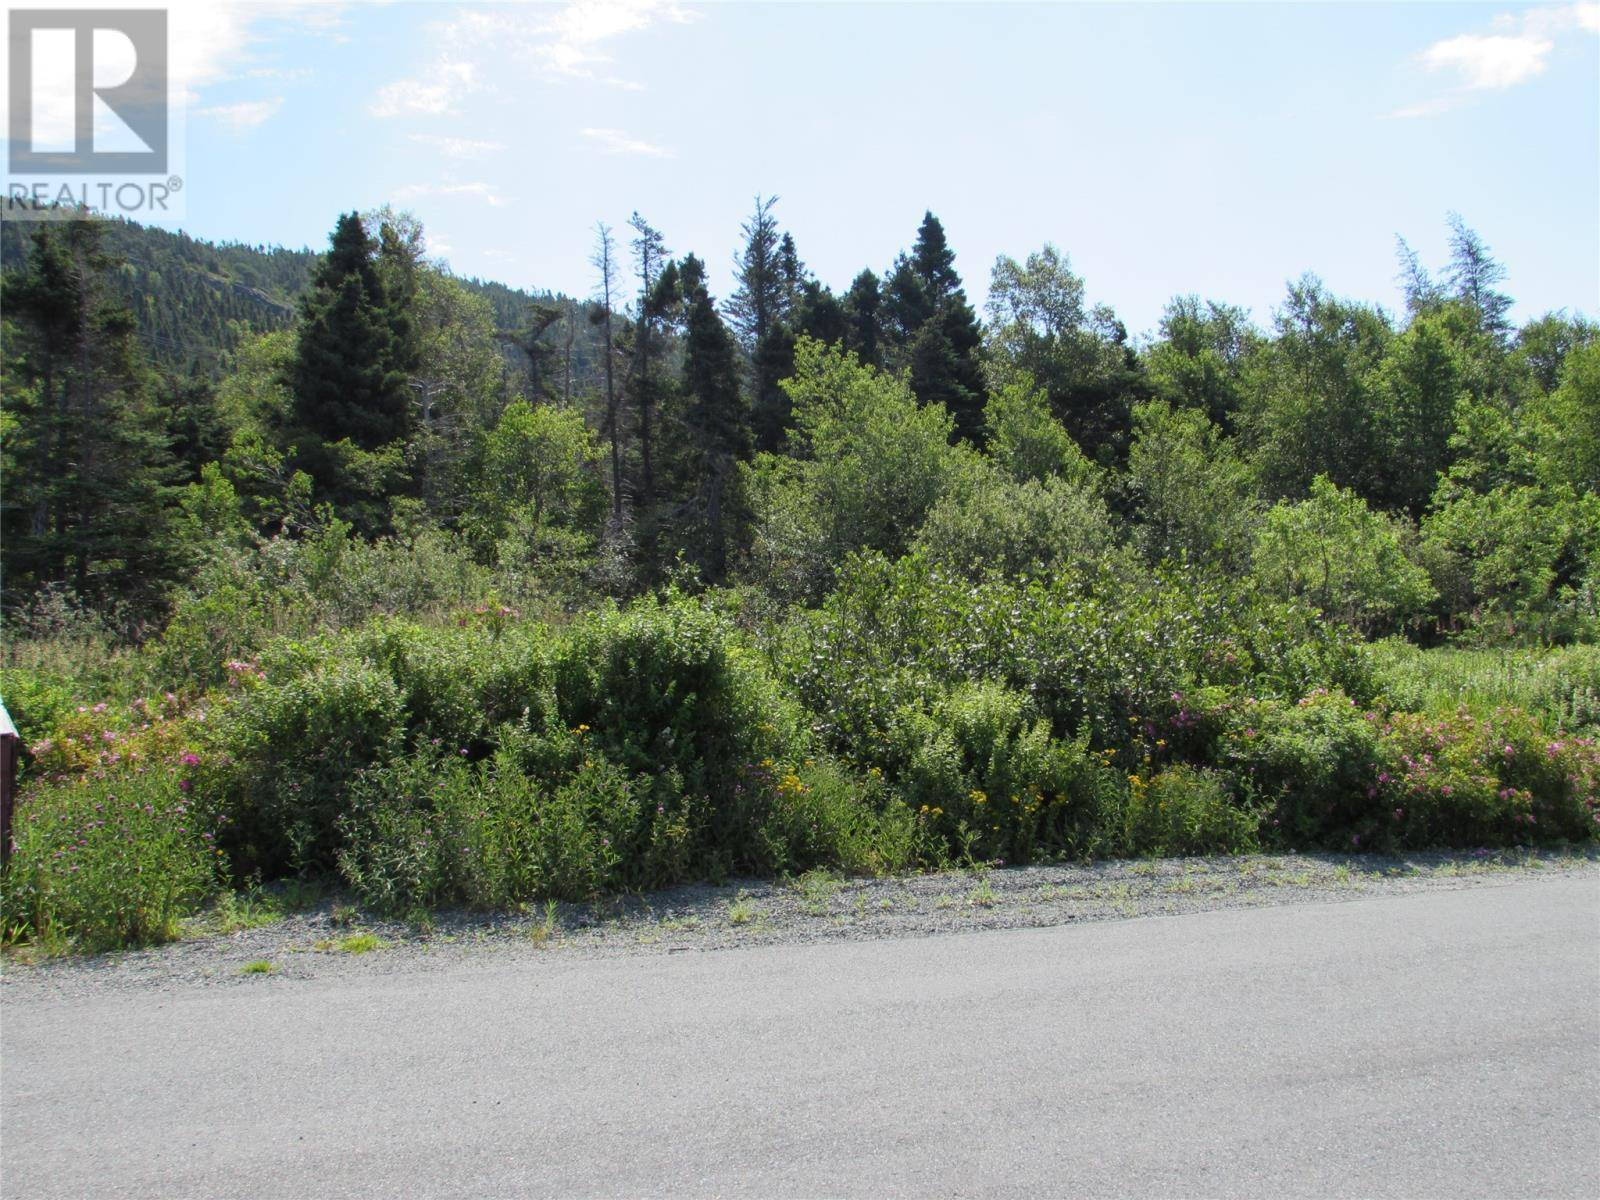 Residential property for sale at 155 Country Path Rd Conception Bay South Newfoundland - MLS: 1207040